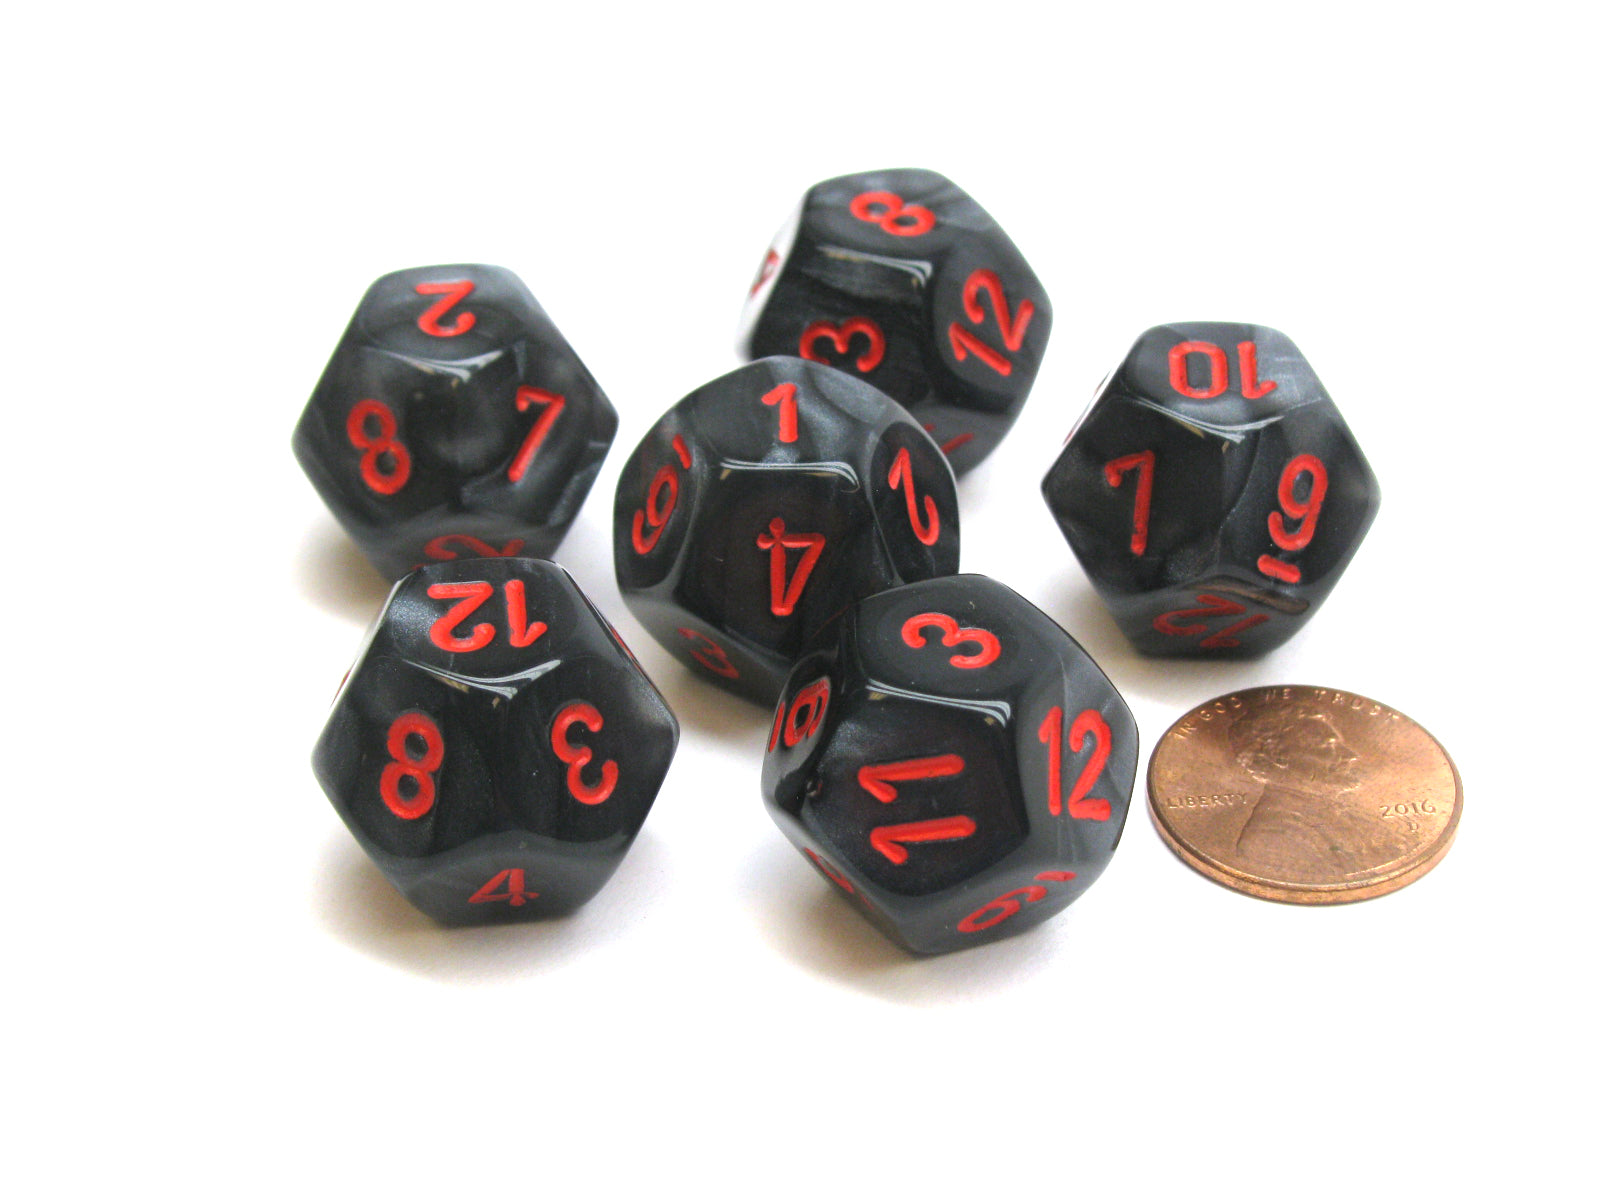 Velvet 18mm 12 Sided D12 Chessex Dice, 6 Pieces -  Black with Red